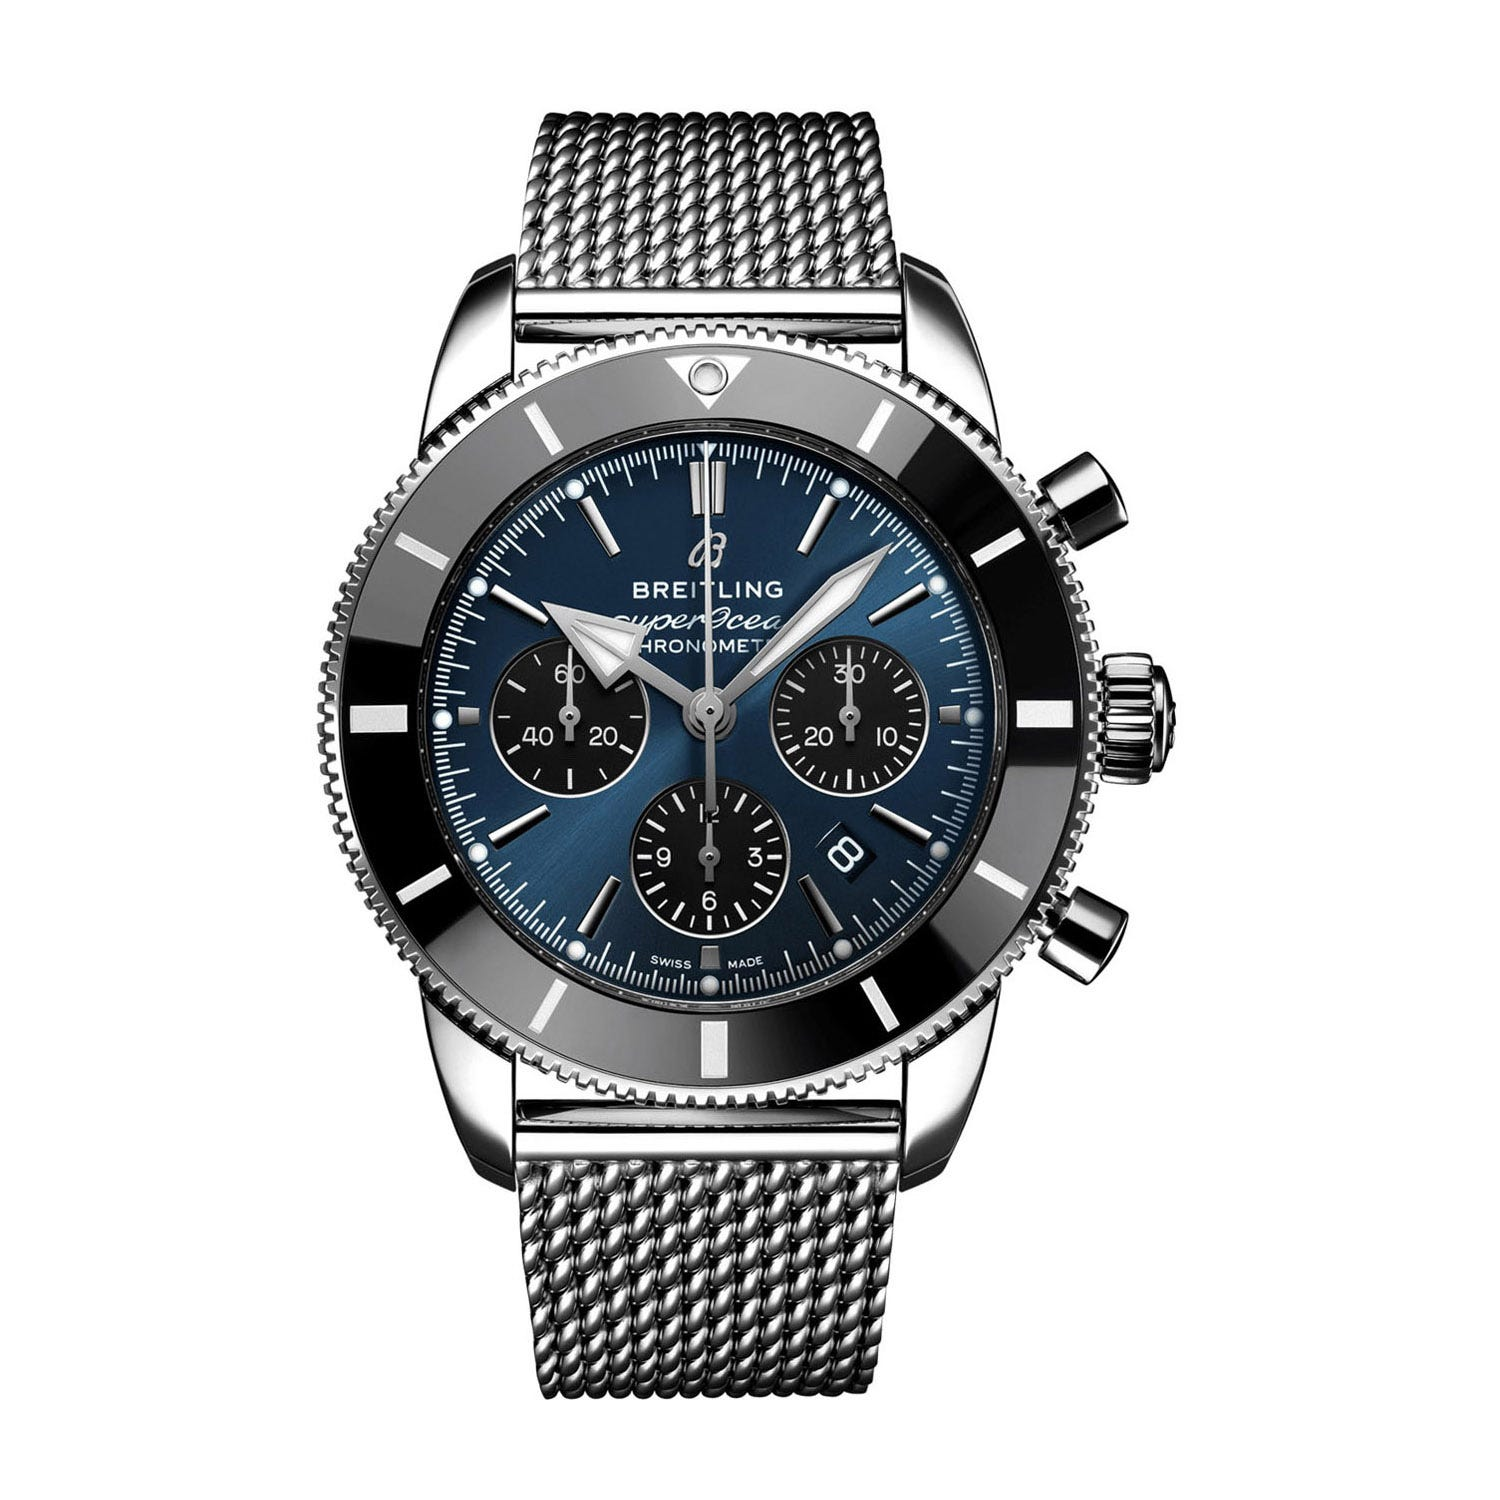 Breitling Superocean Heritage B01 Chronograph 44 Steel & Blue Men's Watch